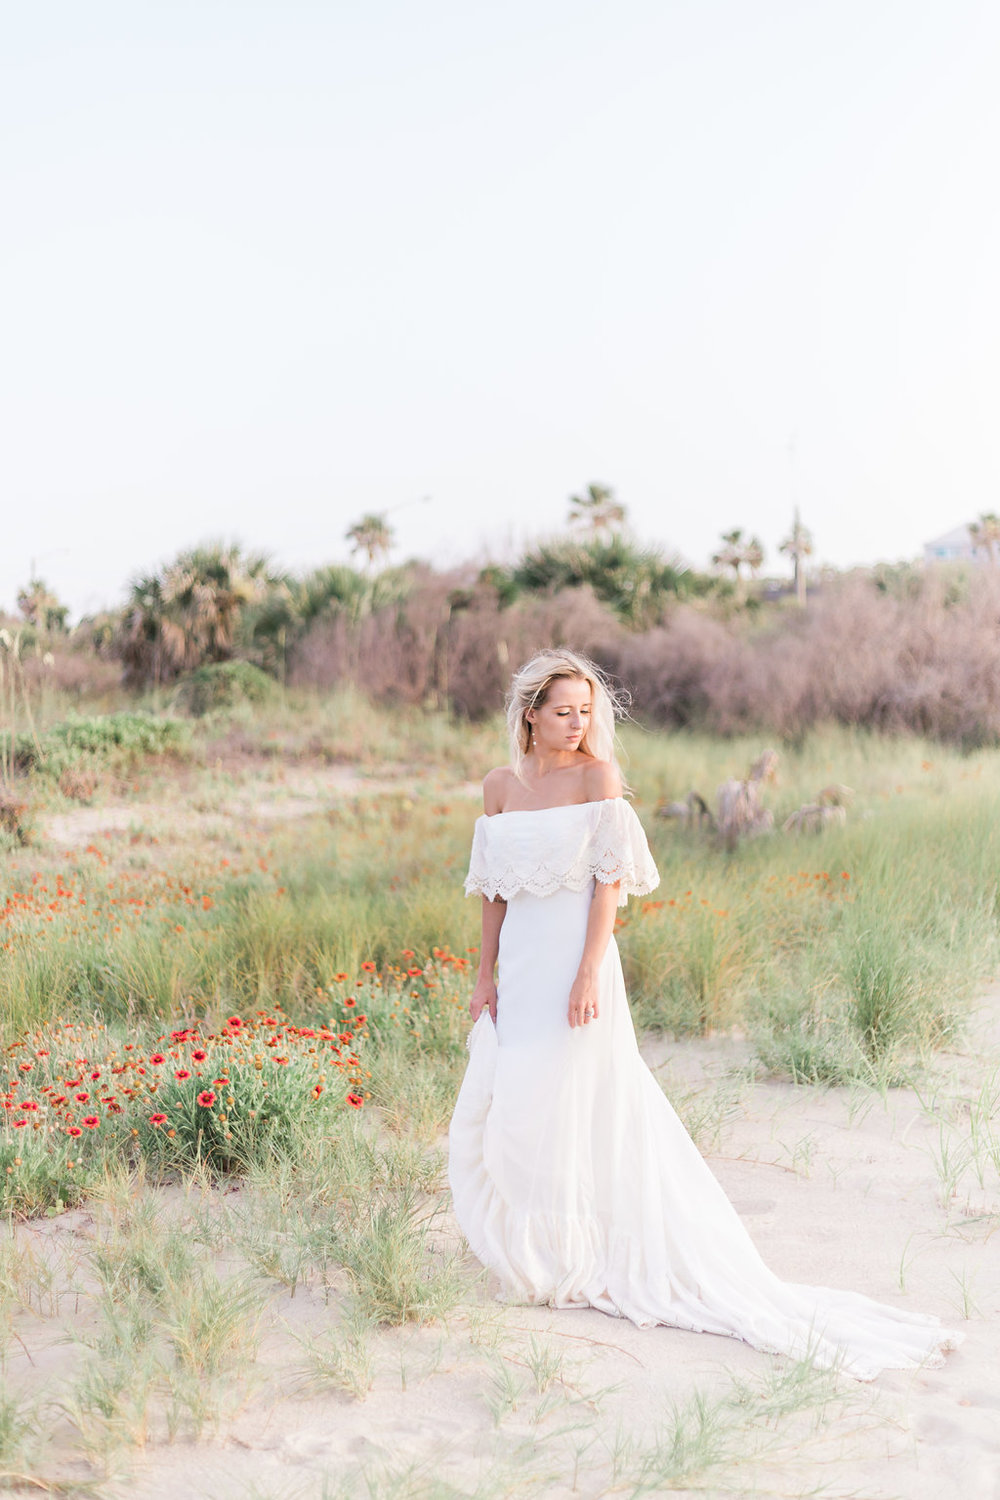 savannah-bridal-shop-last-minute-wedding-planning-details-you-should-start-on-NOW-bluebell-photography-daughters-of-simone-tybee-island-wedding-12.jpg